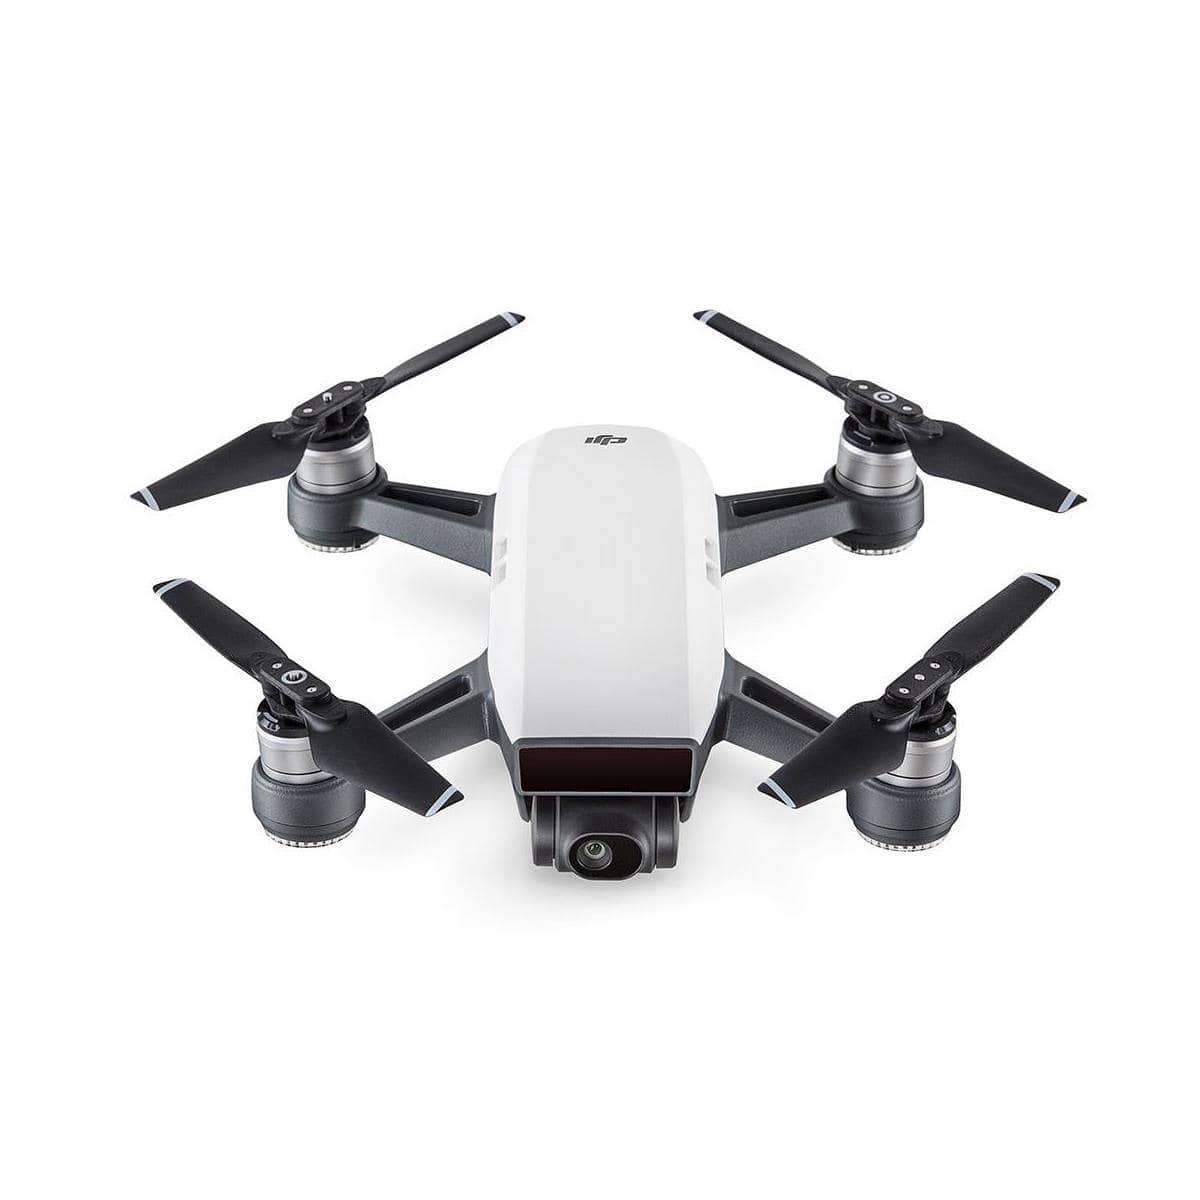 DJI Spark Available for Pre-Order on Adorama - $457 with Two Amex Offers